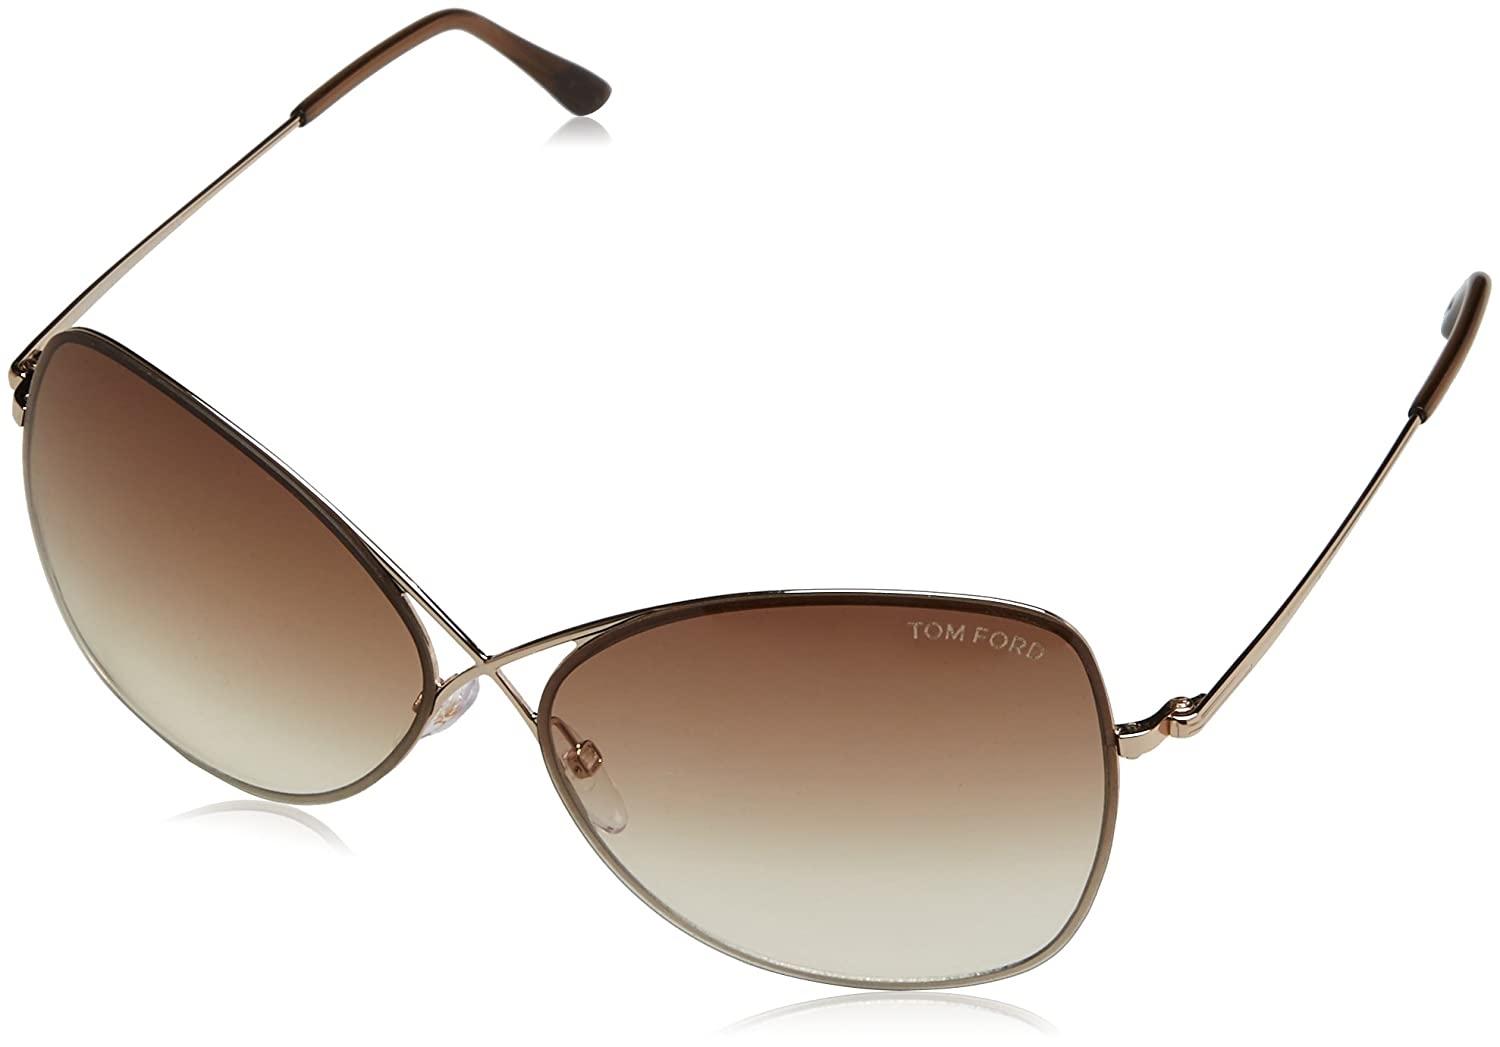 ca618fe16cbe Amazon.com  Tom Ford Sunglasses TF 250 BRONZE 48F Collete  Tom Ford   Clothing